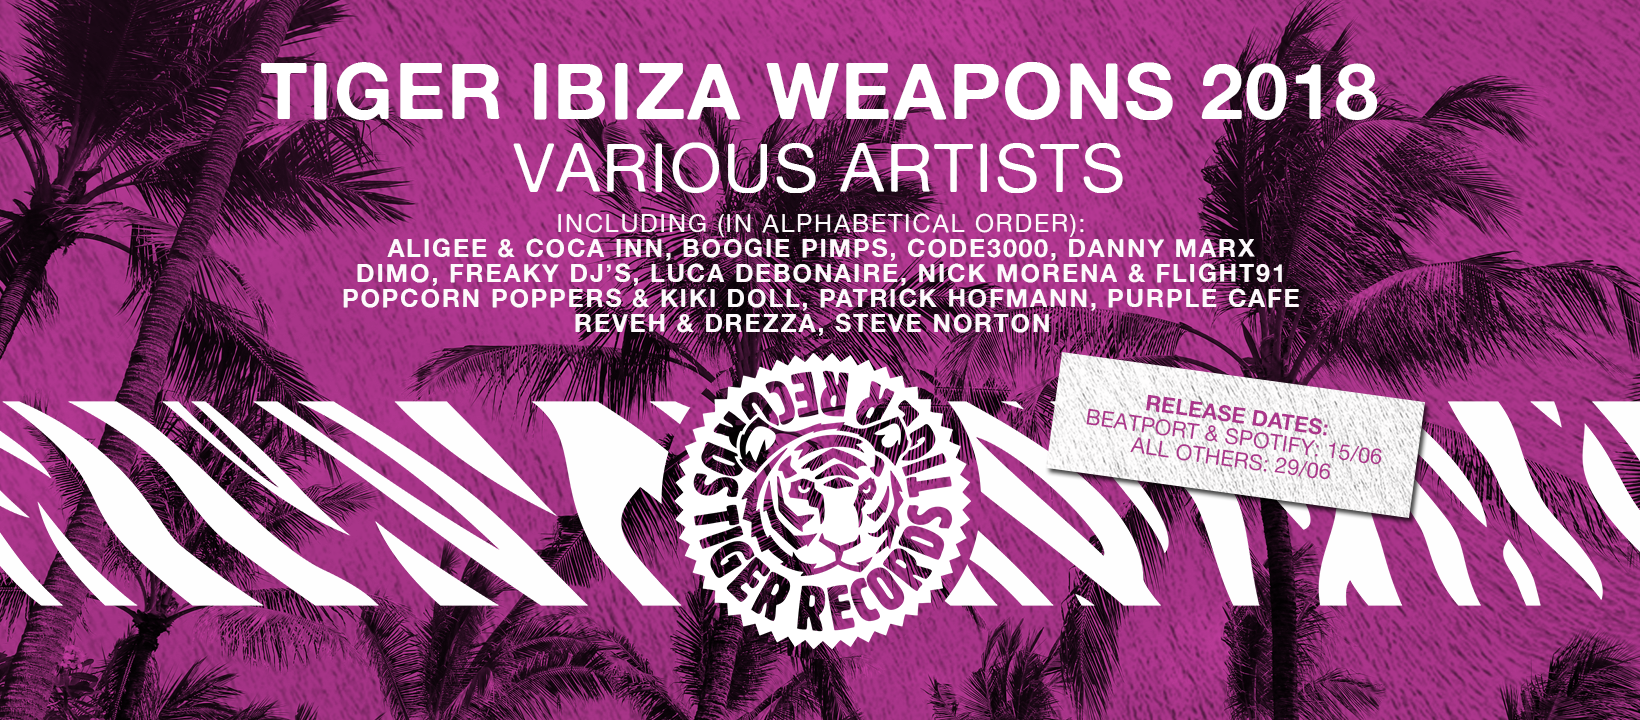 TIGREC031 - Tiger Ibiza Weapons 2018